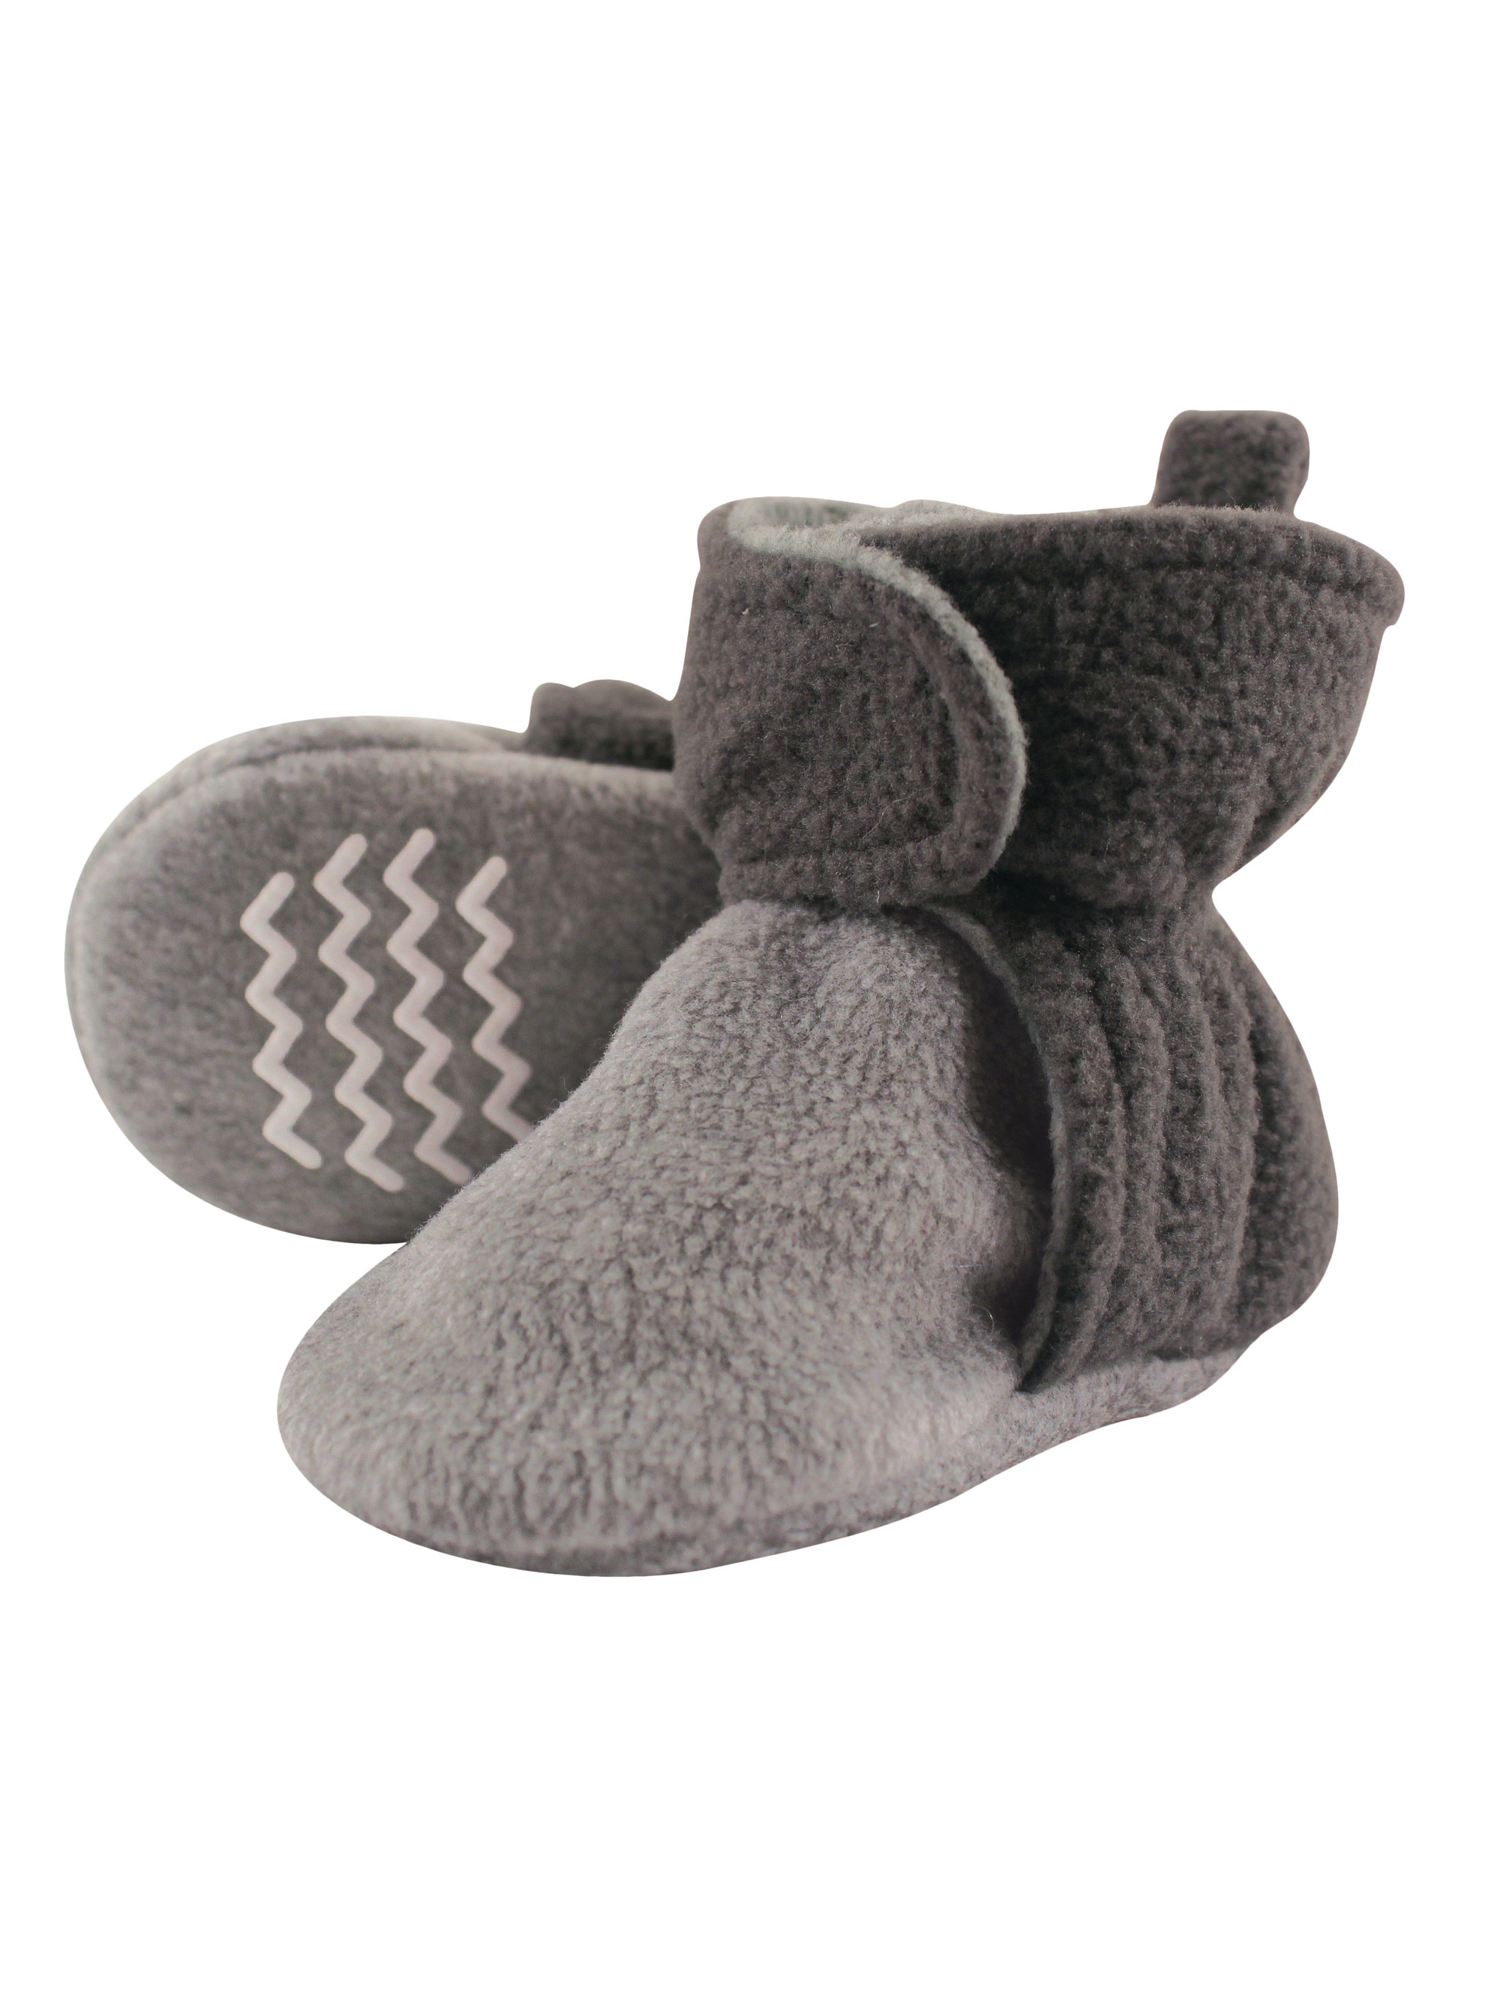 Hudson Baby Unisex Cozy Fleece and Sherpa Booties